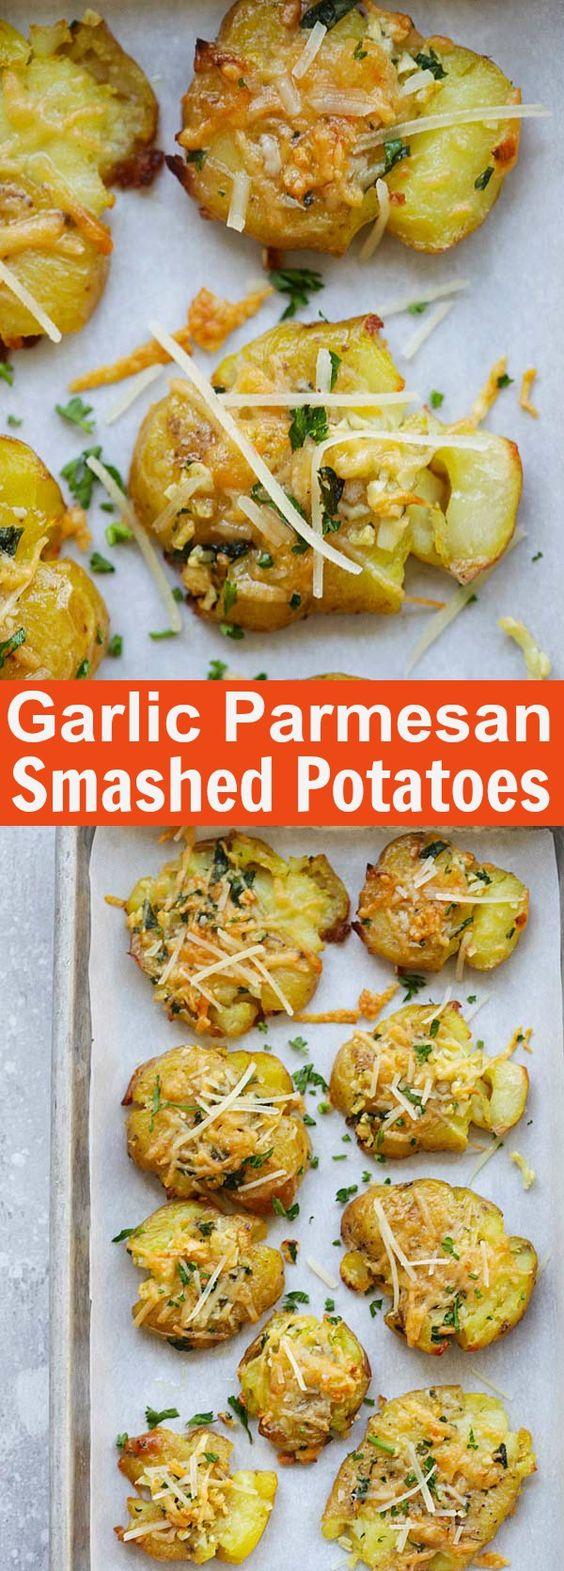 Garlic Parmesan Smashed Potatoes - the best potatoes recipe ever with nicely smashed potatoes loaded with butter, garlic and Parmesan cheese. So good | rasamalaysia.com